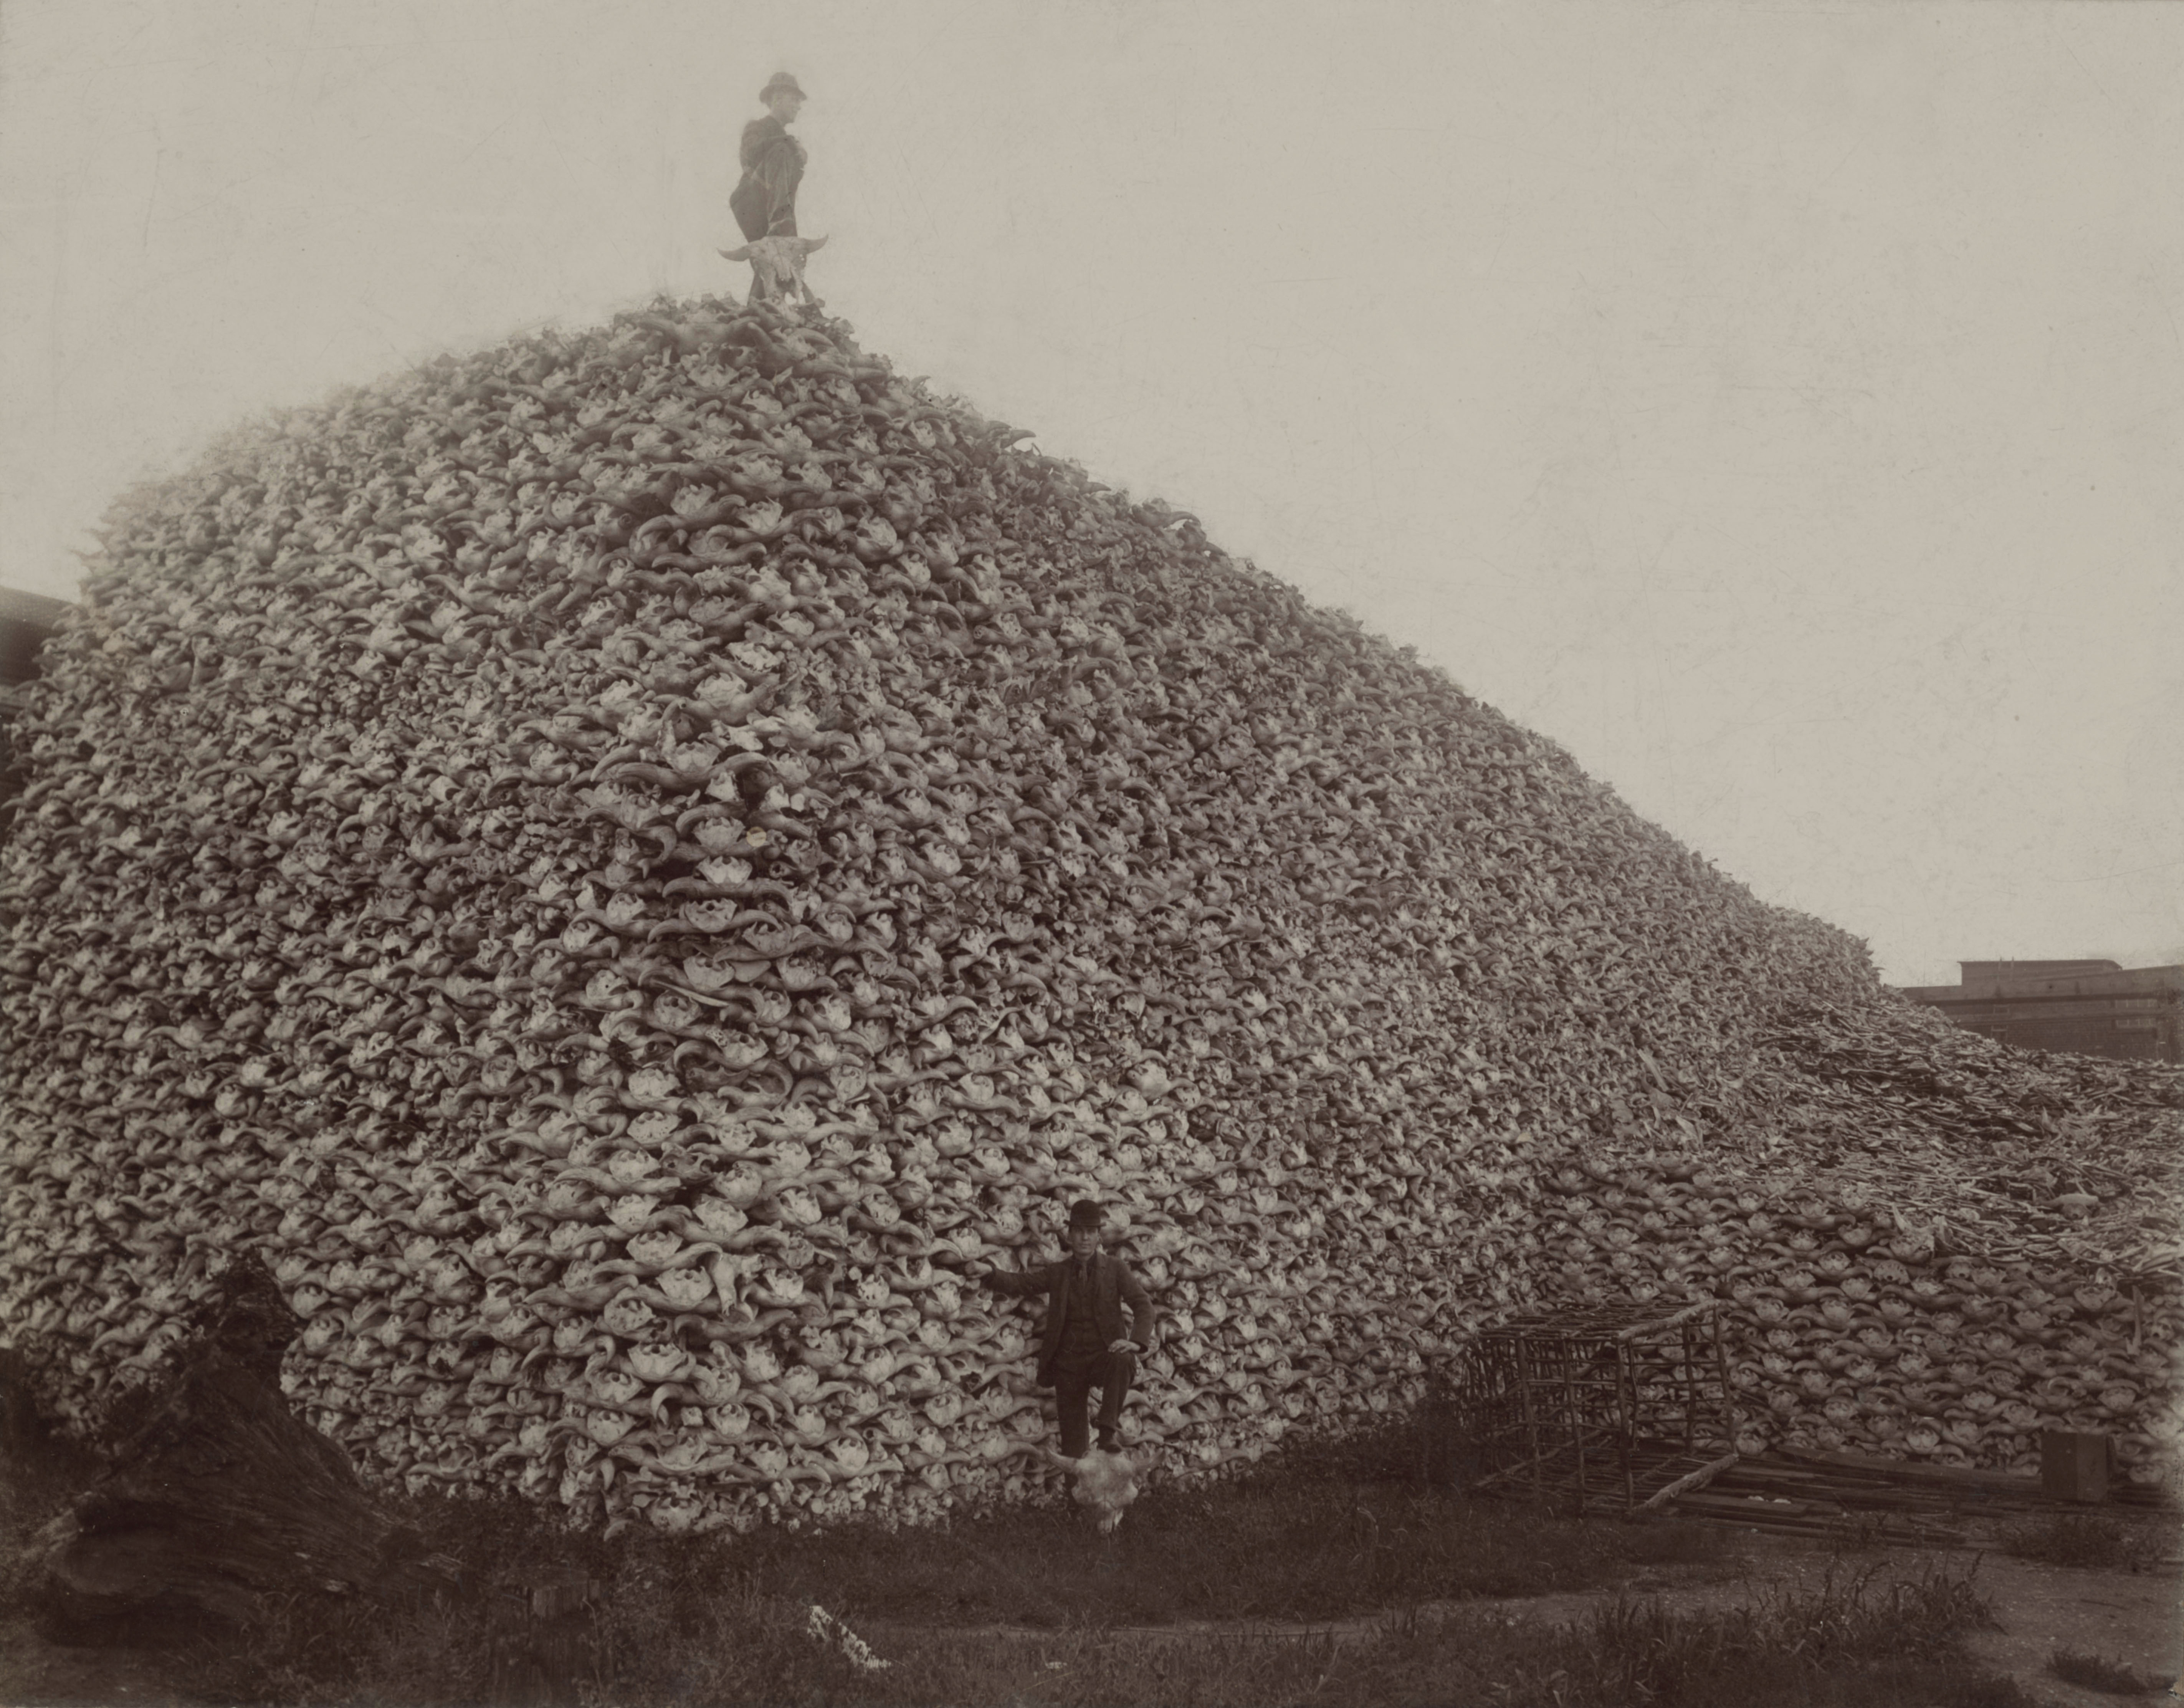 Bison skulls, in Detroit, MI, waiting to be ground up for fertilizer in 1892. Photo courtesy of Wikimedia Commons